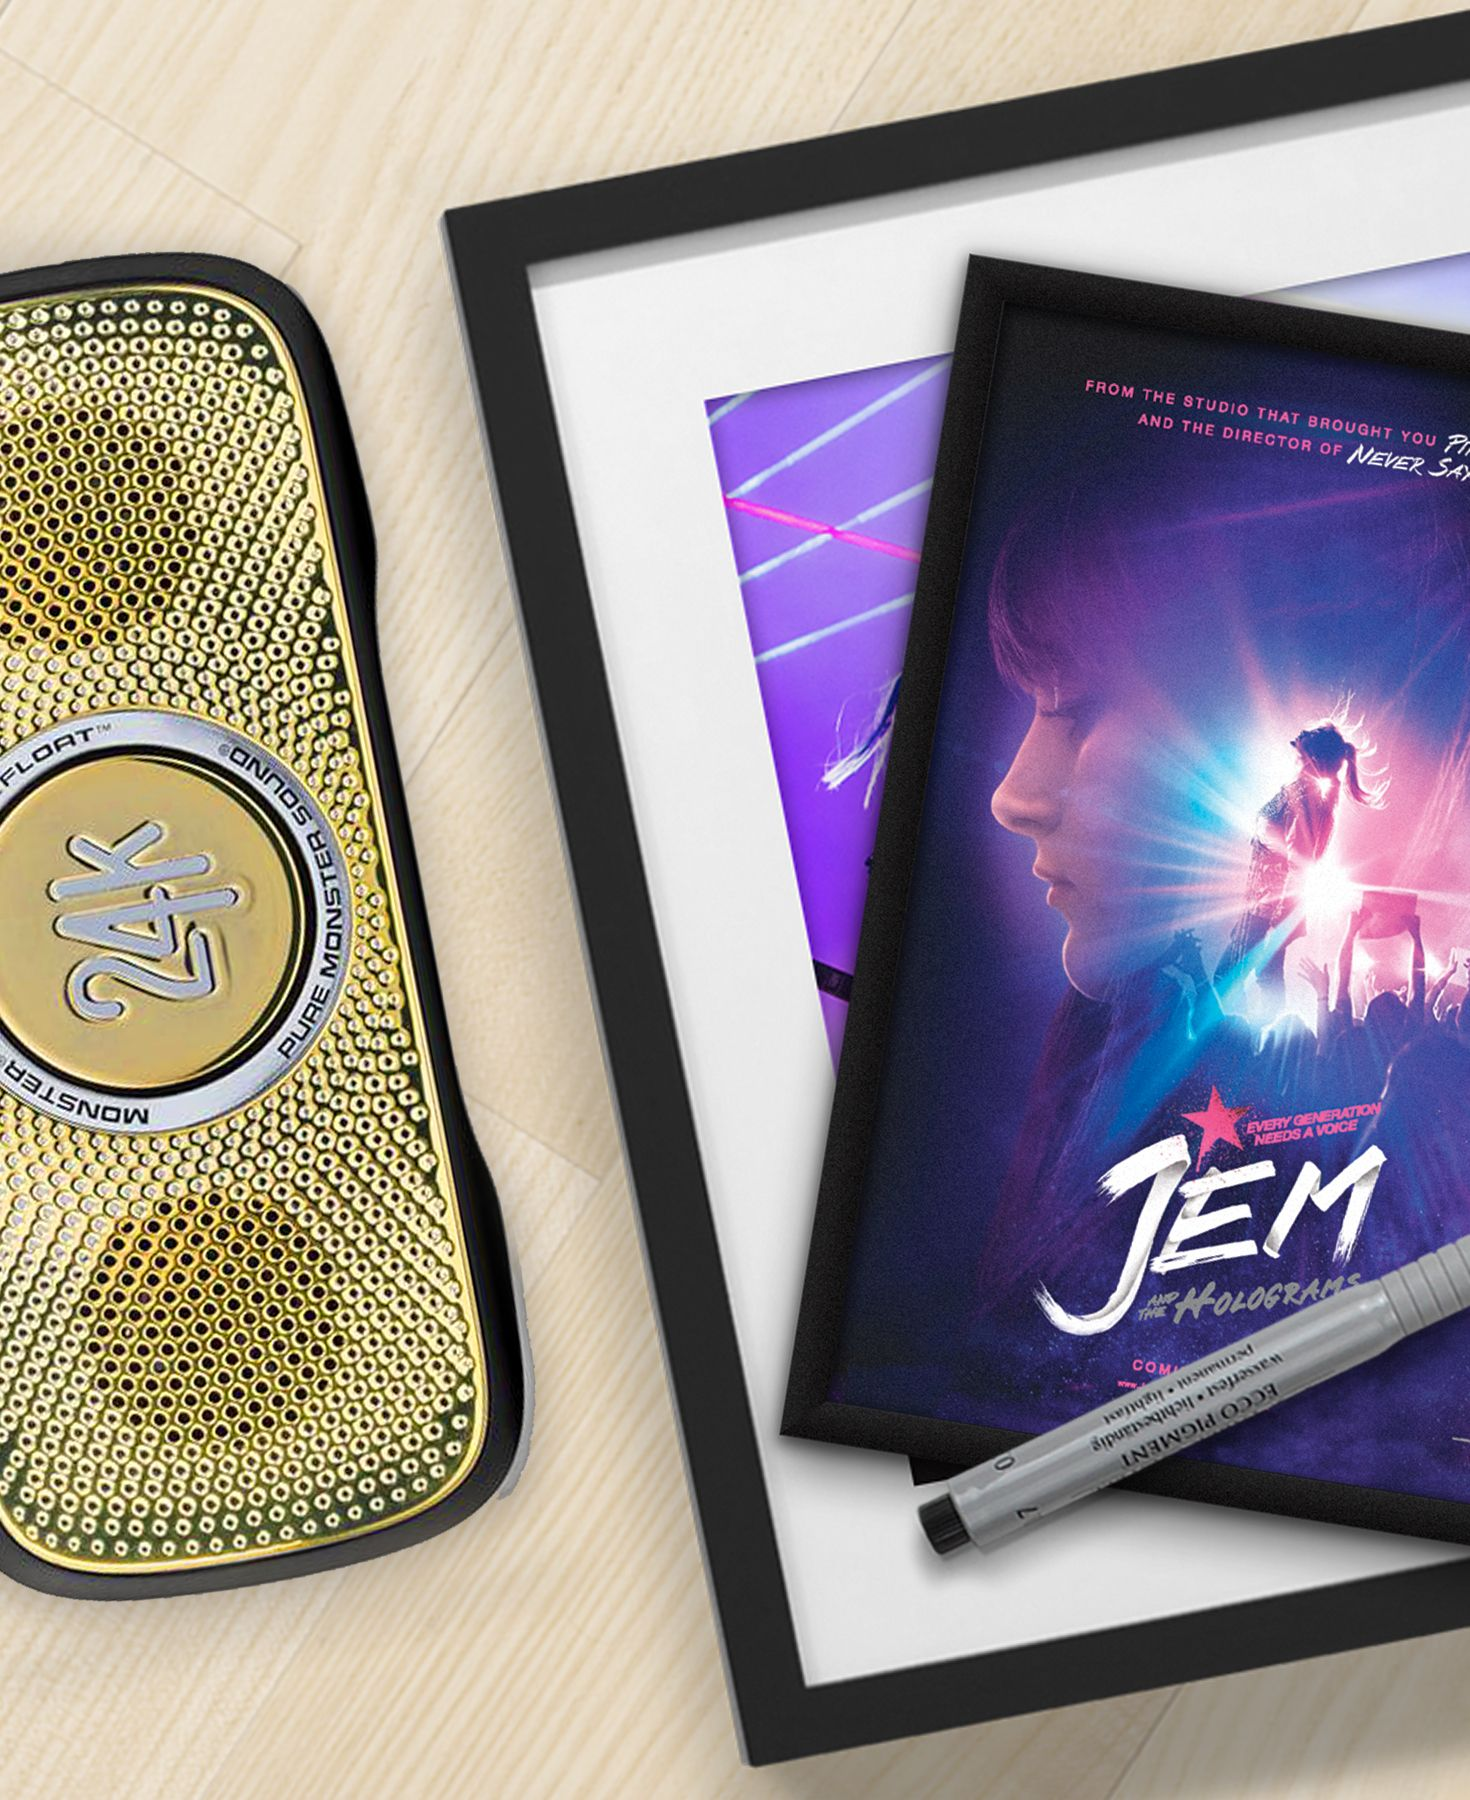 https://www.pinterest.com/monsterproducts/jem-and-the-holograms/ #monsterjem #contest #win #enter #pinanything :)